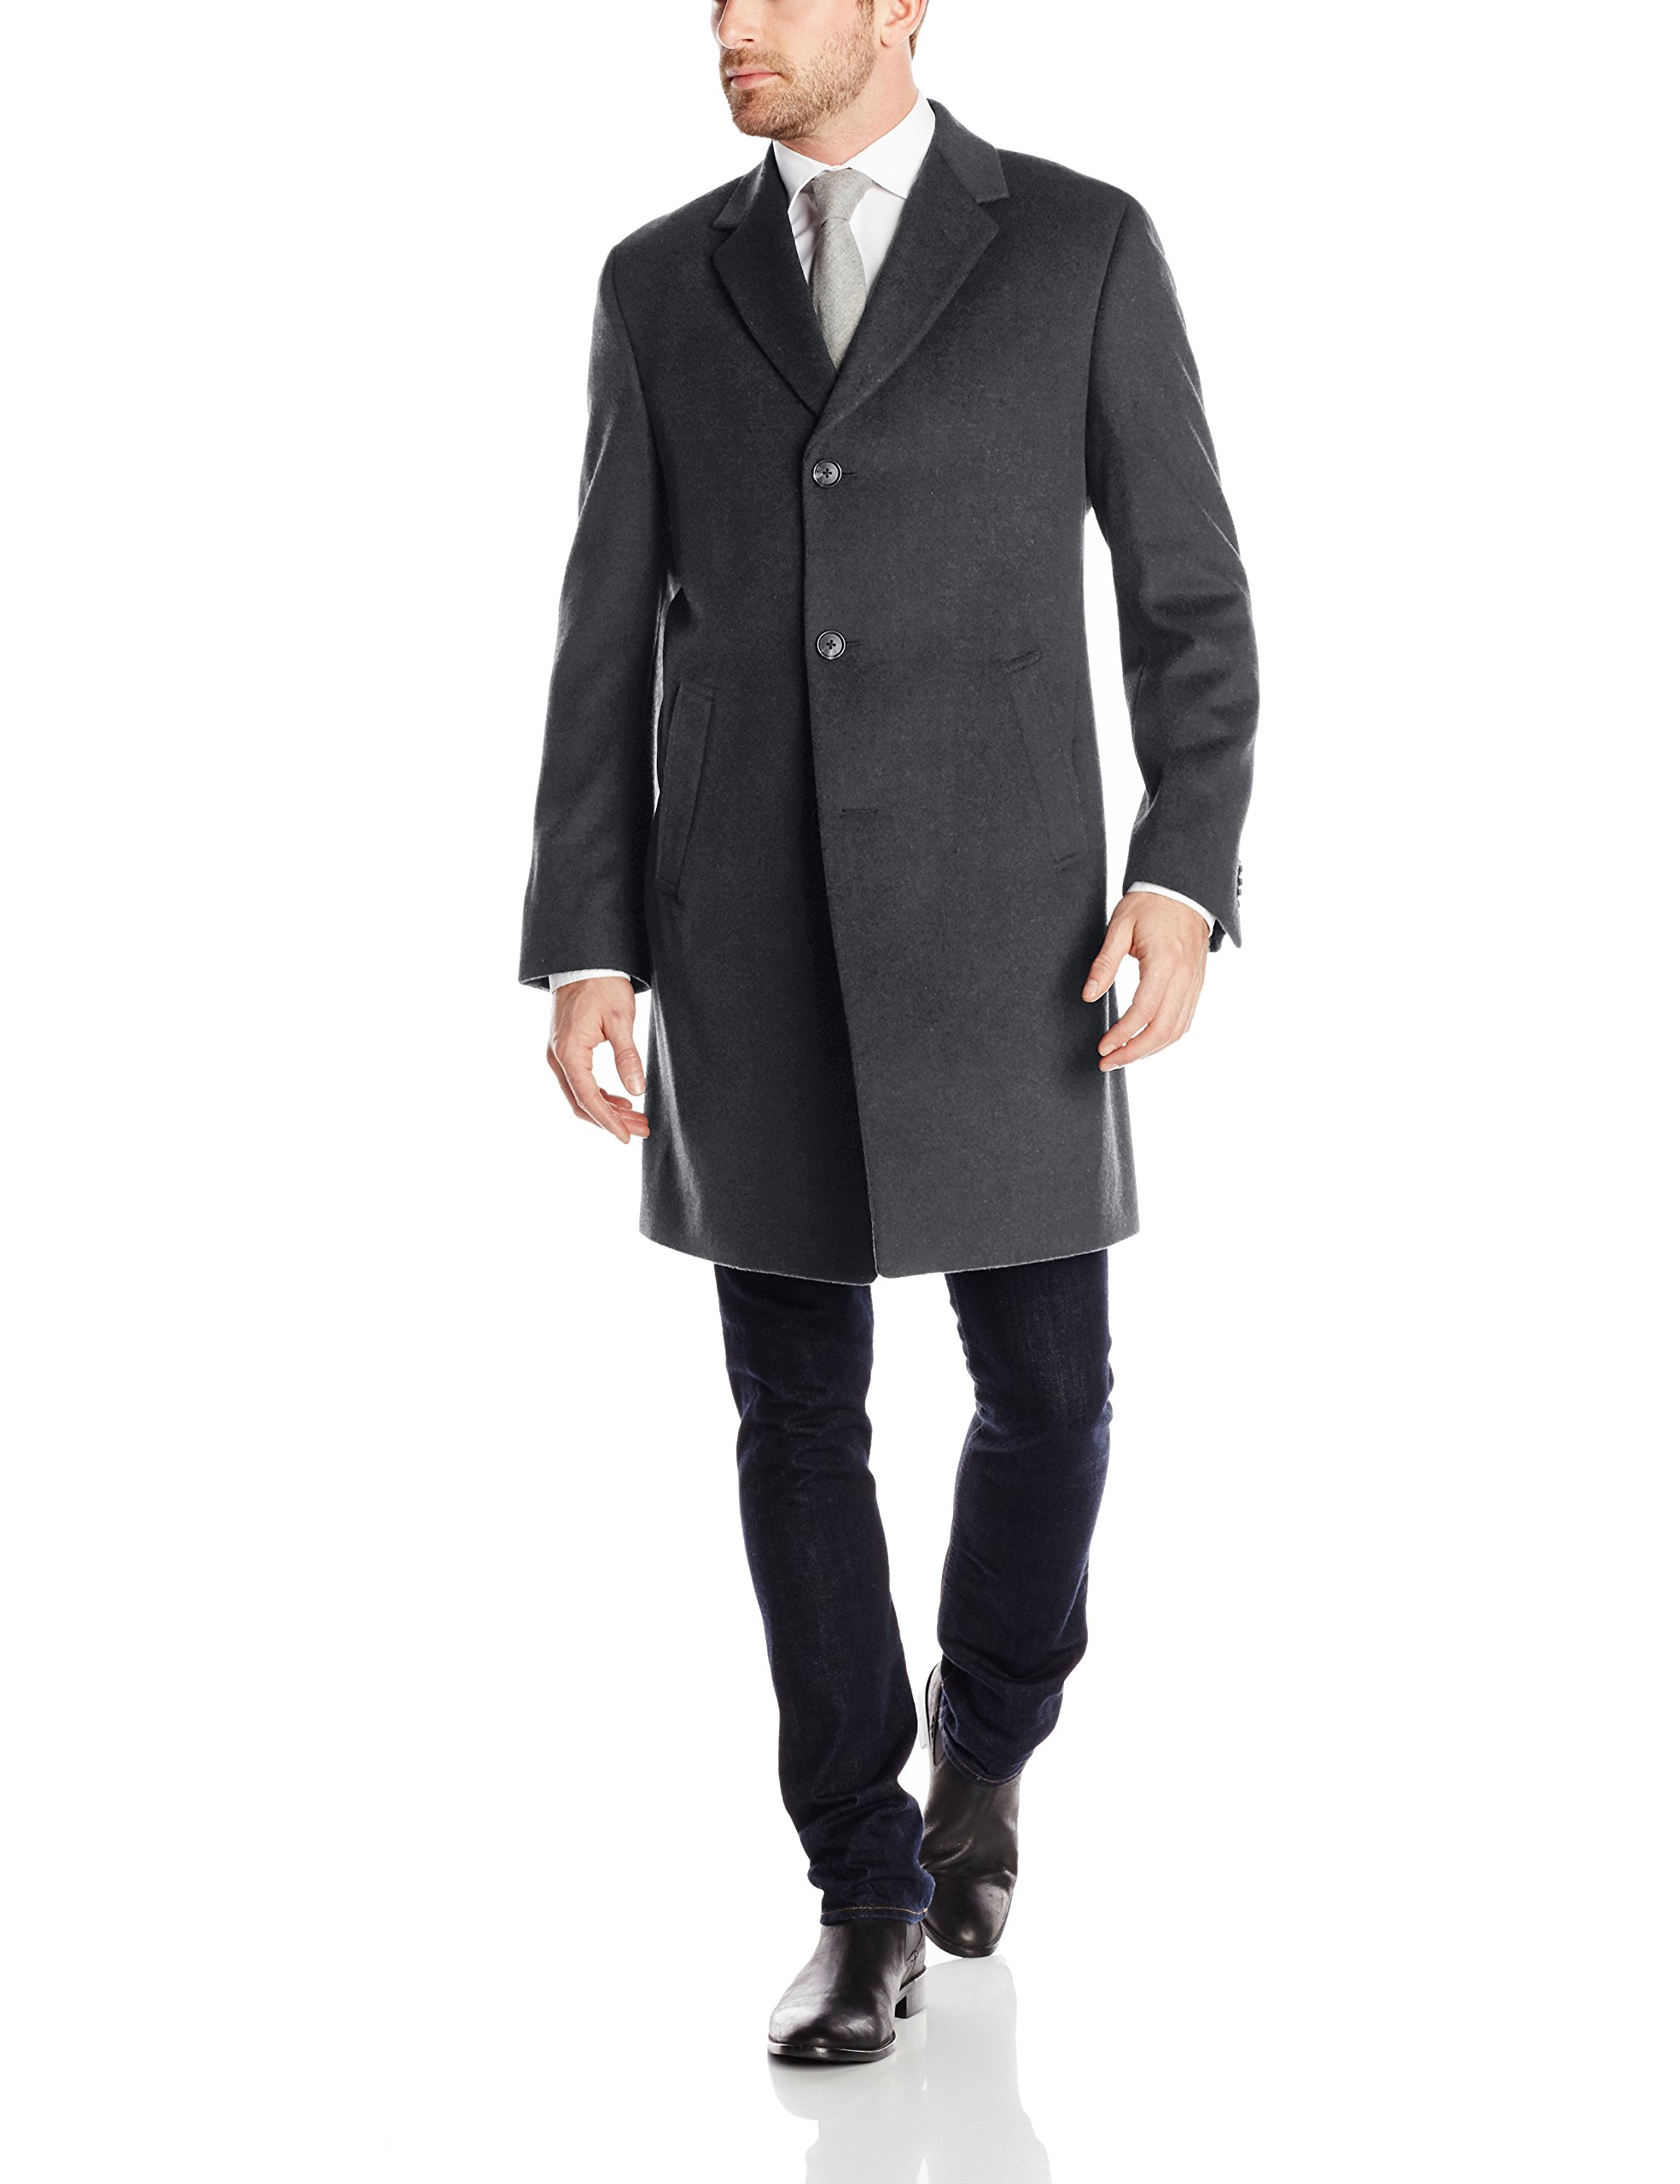 Kenneth Cole REACTION Men's Raburn Wool Top Coat, Charcoal, 40 Short